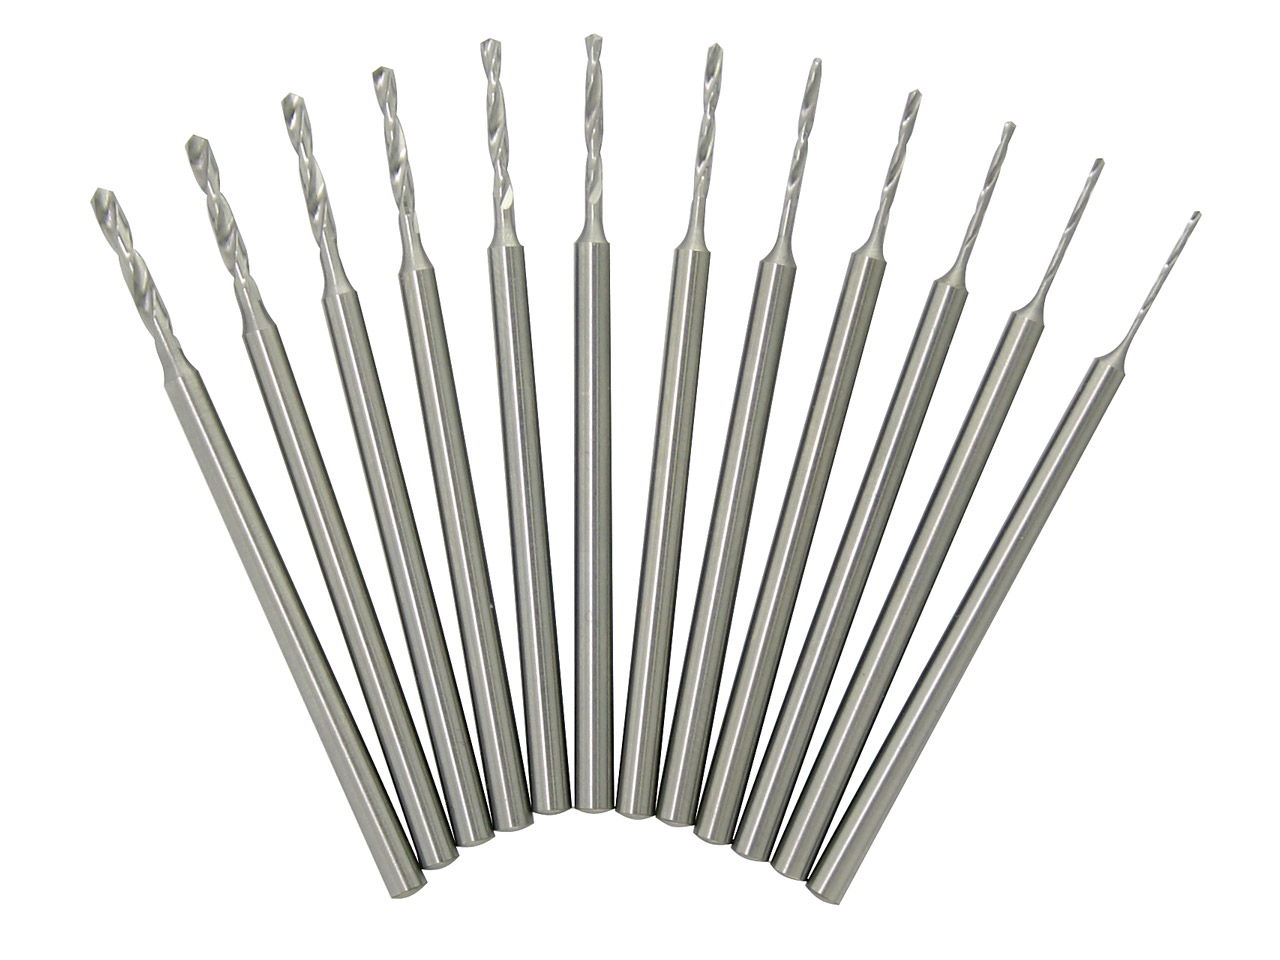 Malliefer Swiss Shank Drill Set Of 12, 0.5mm To 1.6mm